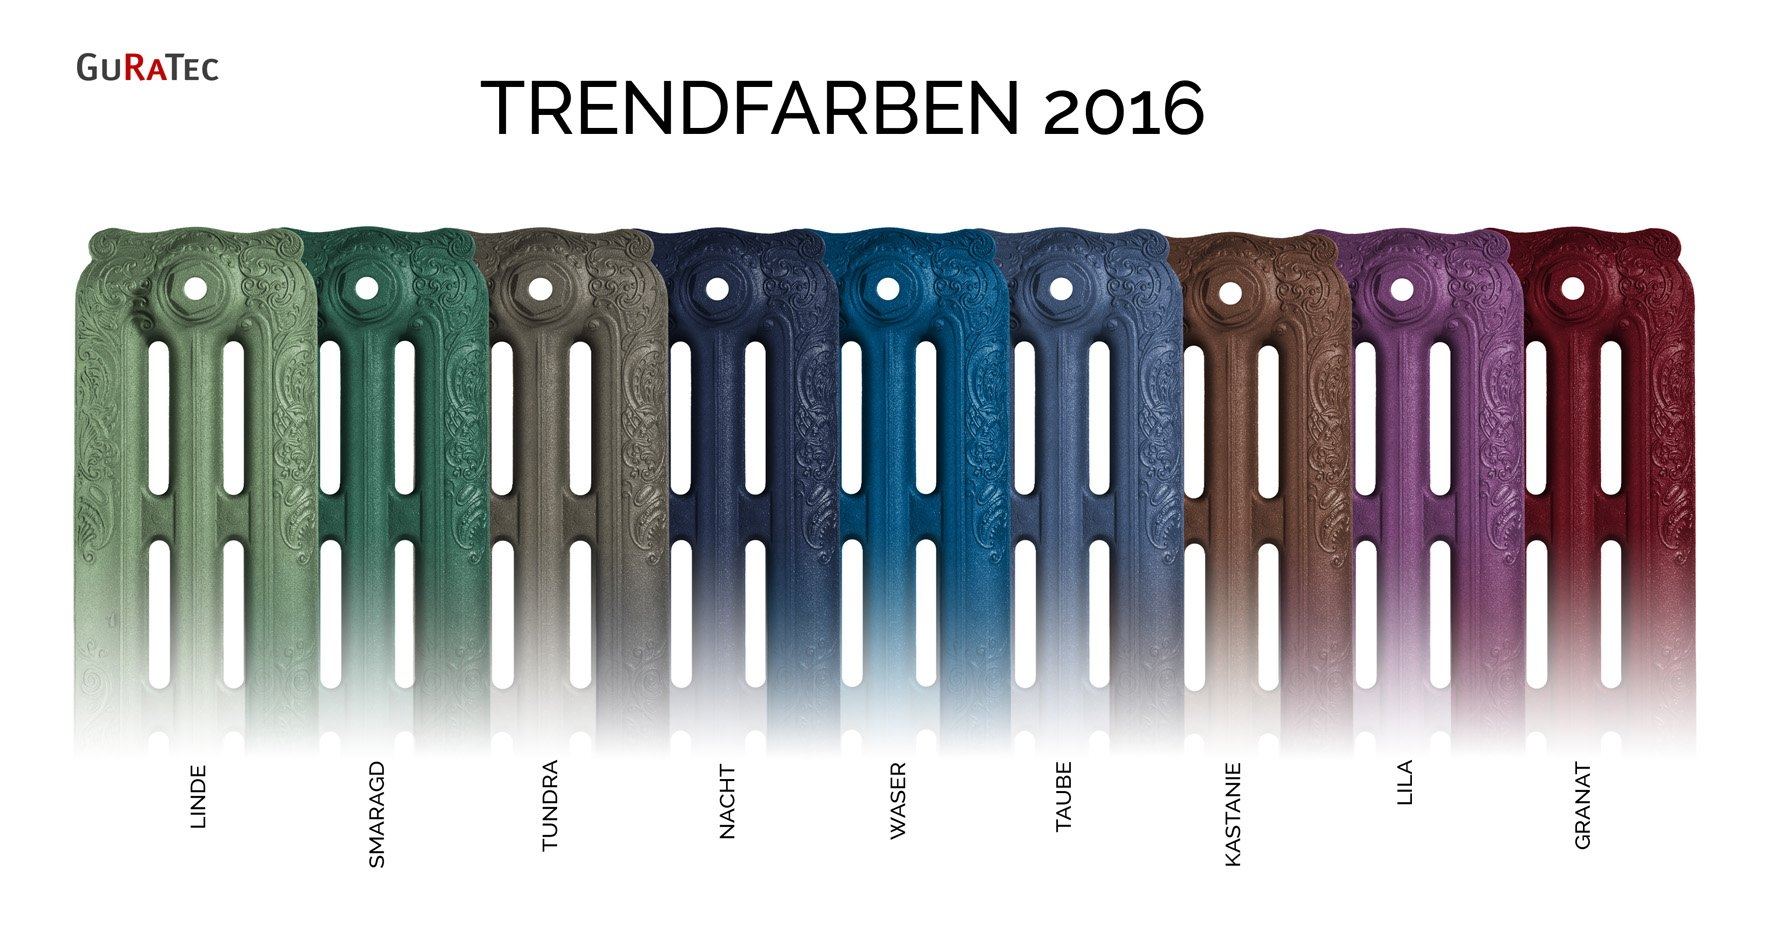 gussheizk rper antiker und historischer ausf hrung vom profi. Black Bedroom Furniture Sets. Home Design Ideas